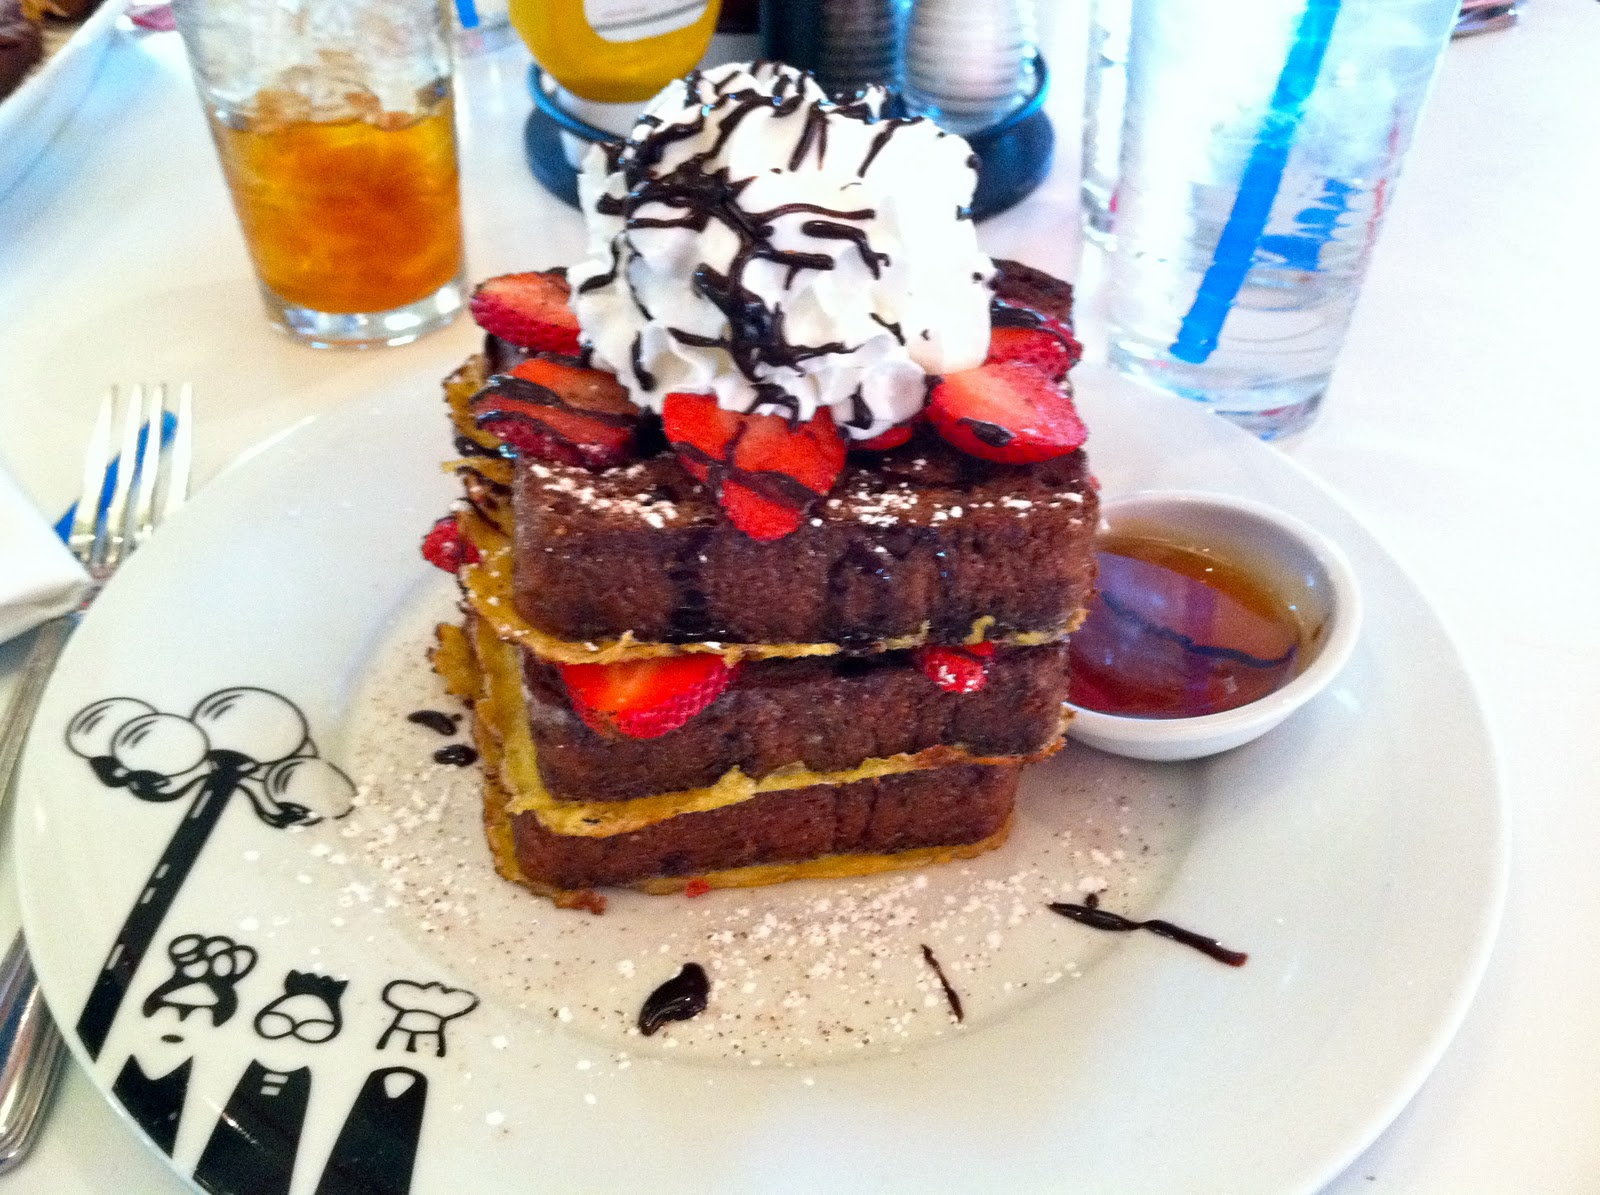 Serendipity 3 Las Vegas - Dessert for Breakfast ~ The World of Deej